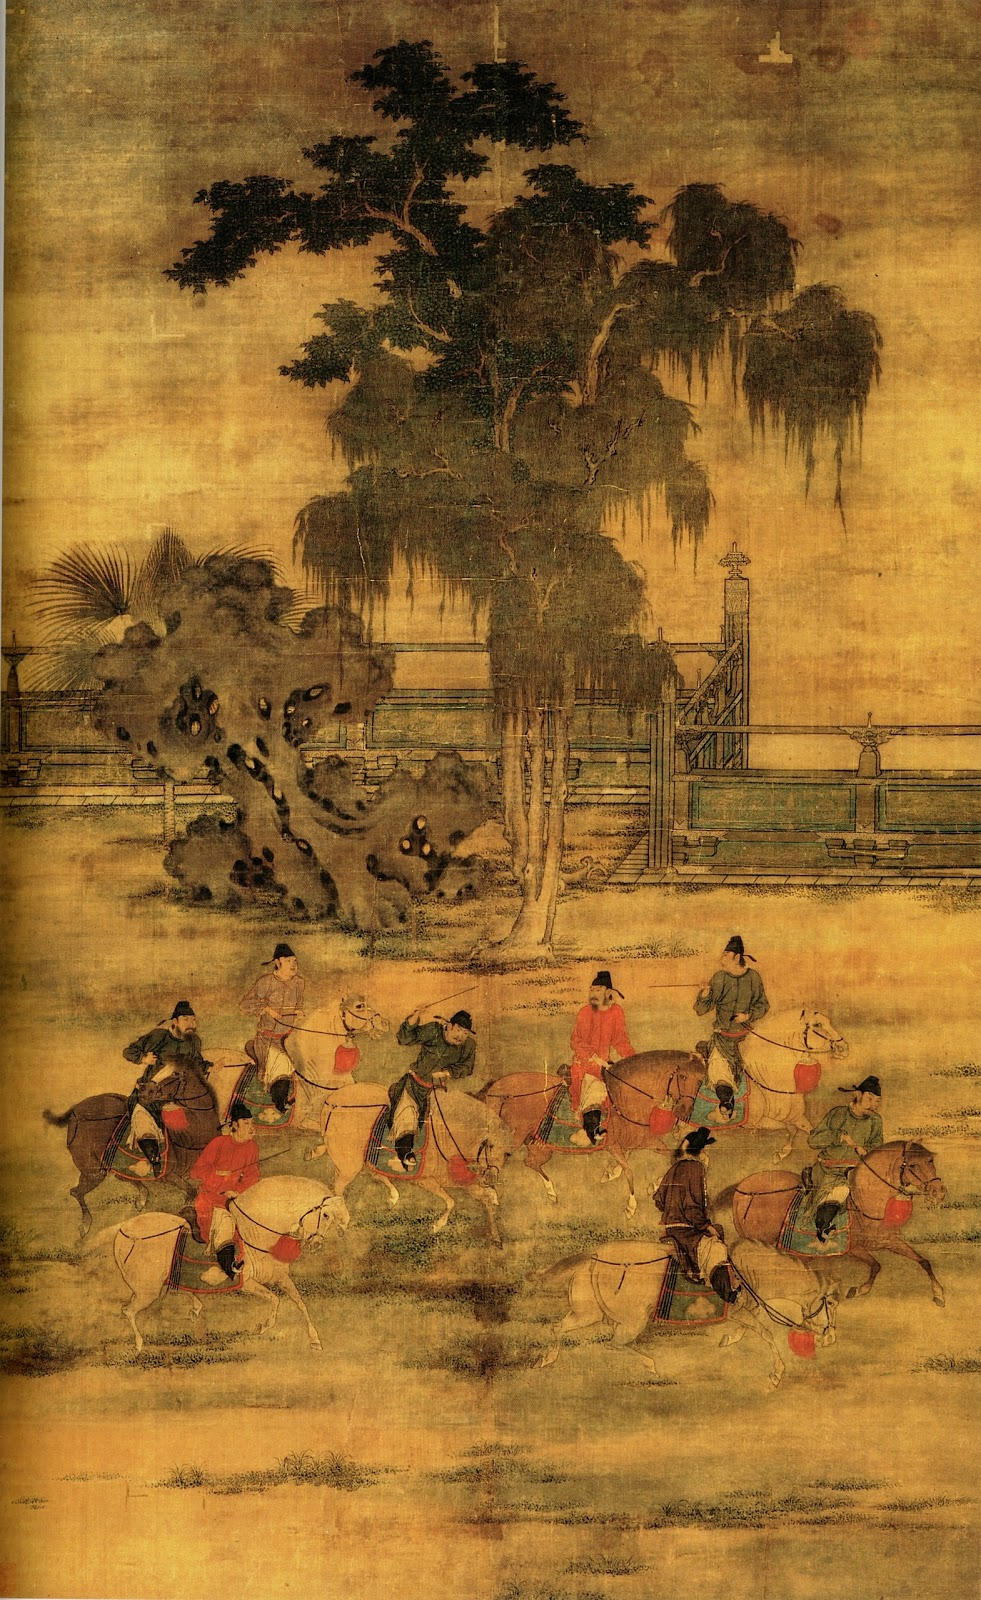 song dynasty After the collapse of the tang dynasty, china once again spiraled into chaos muslims from arabia took central asia, while nomads from the north constantly harassed.